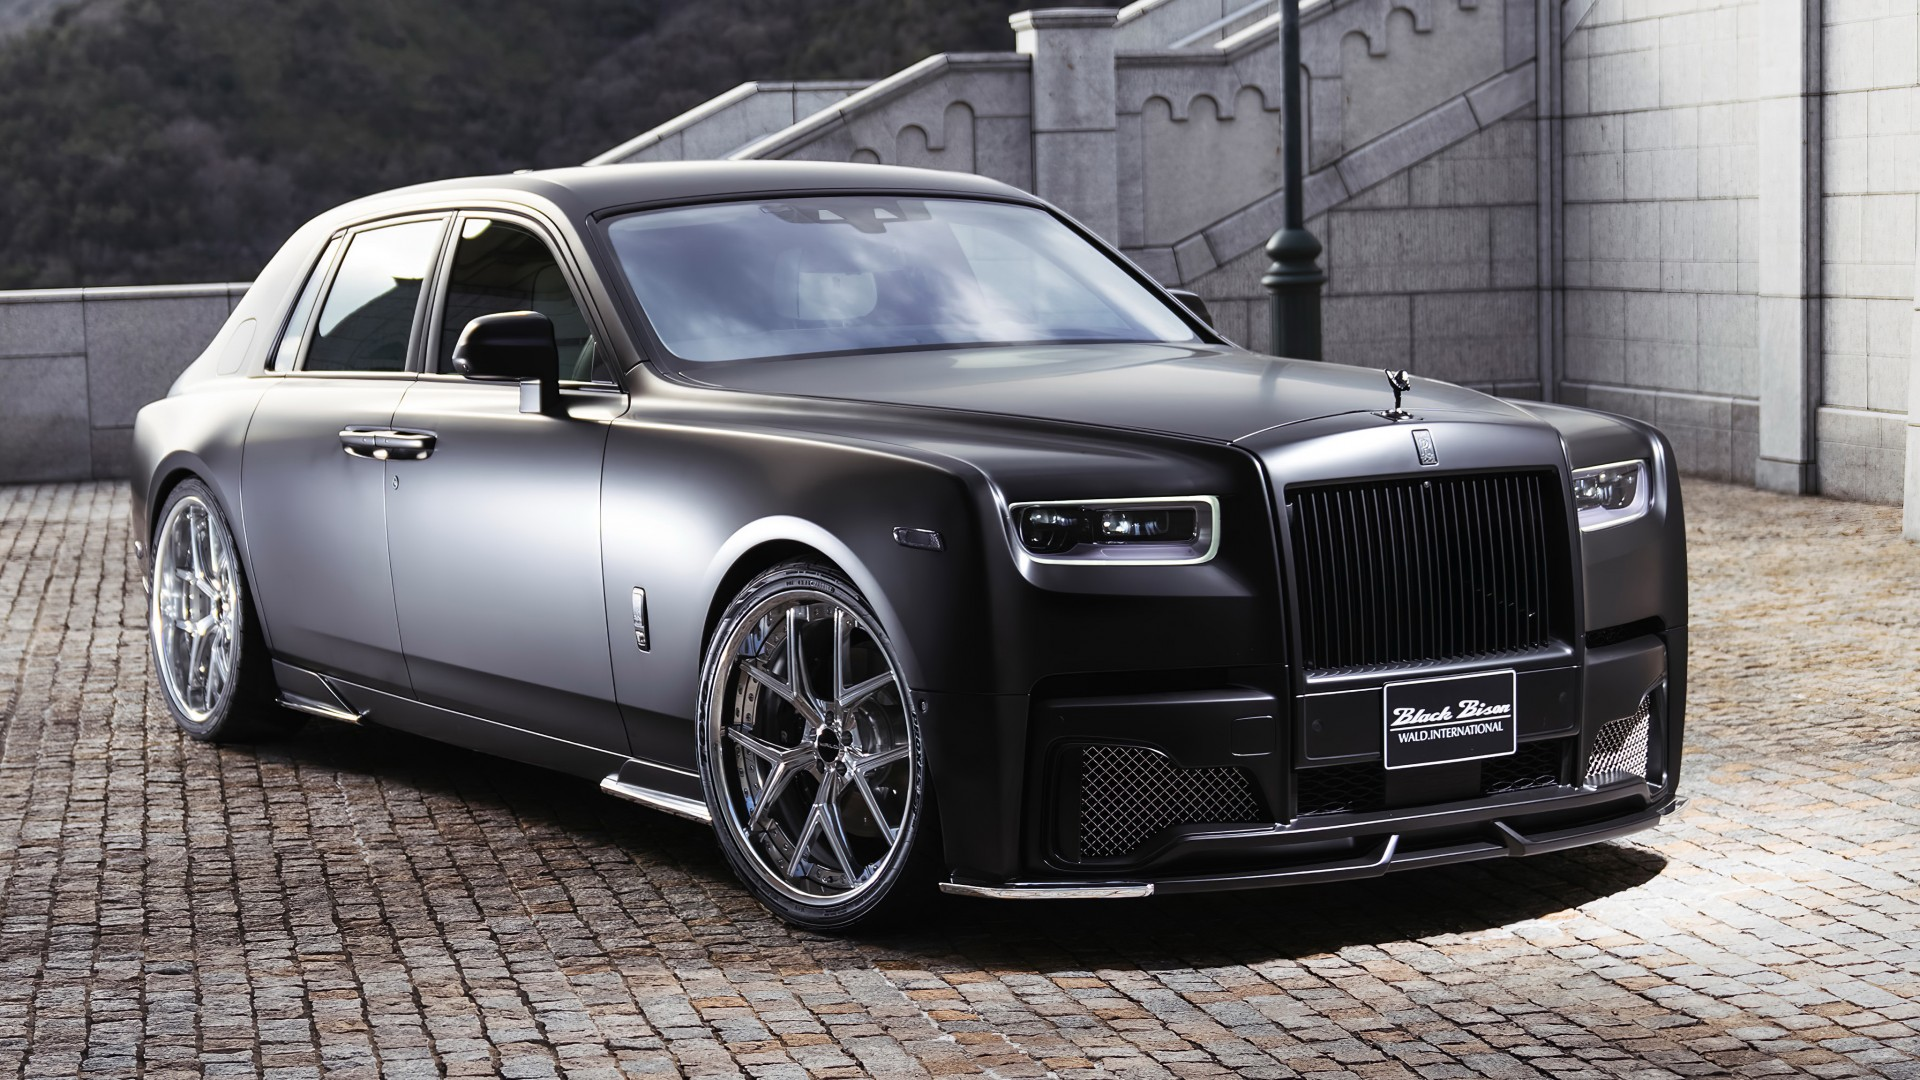 Rolls Royce Ghost Black Badge >> WALD Rolls-Royce Phantom Sports Line Black Bison Edition